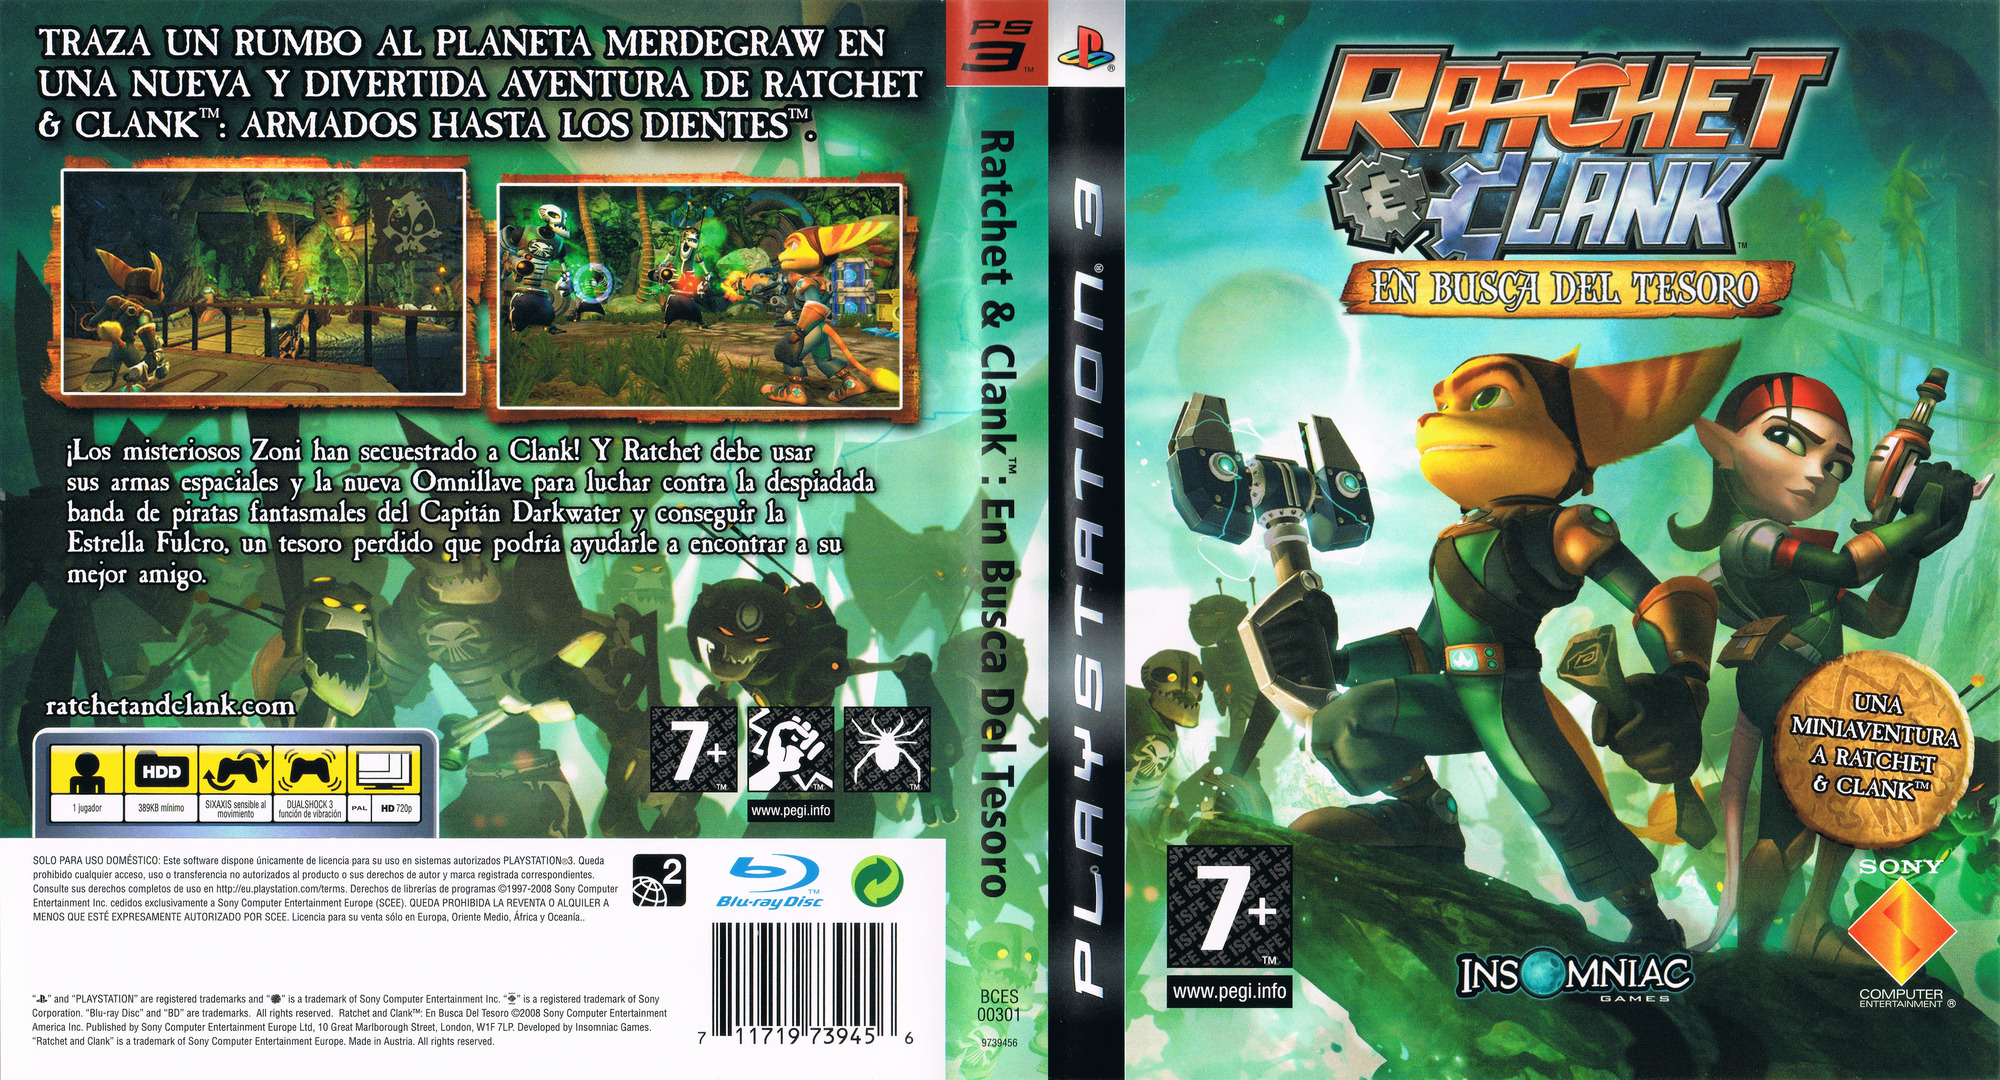 Ratchet & Clank: En busca del tesoro PS3 coverfullHQ (BCES00301)